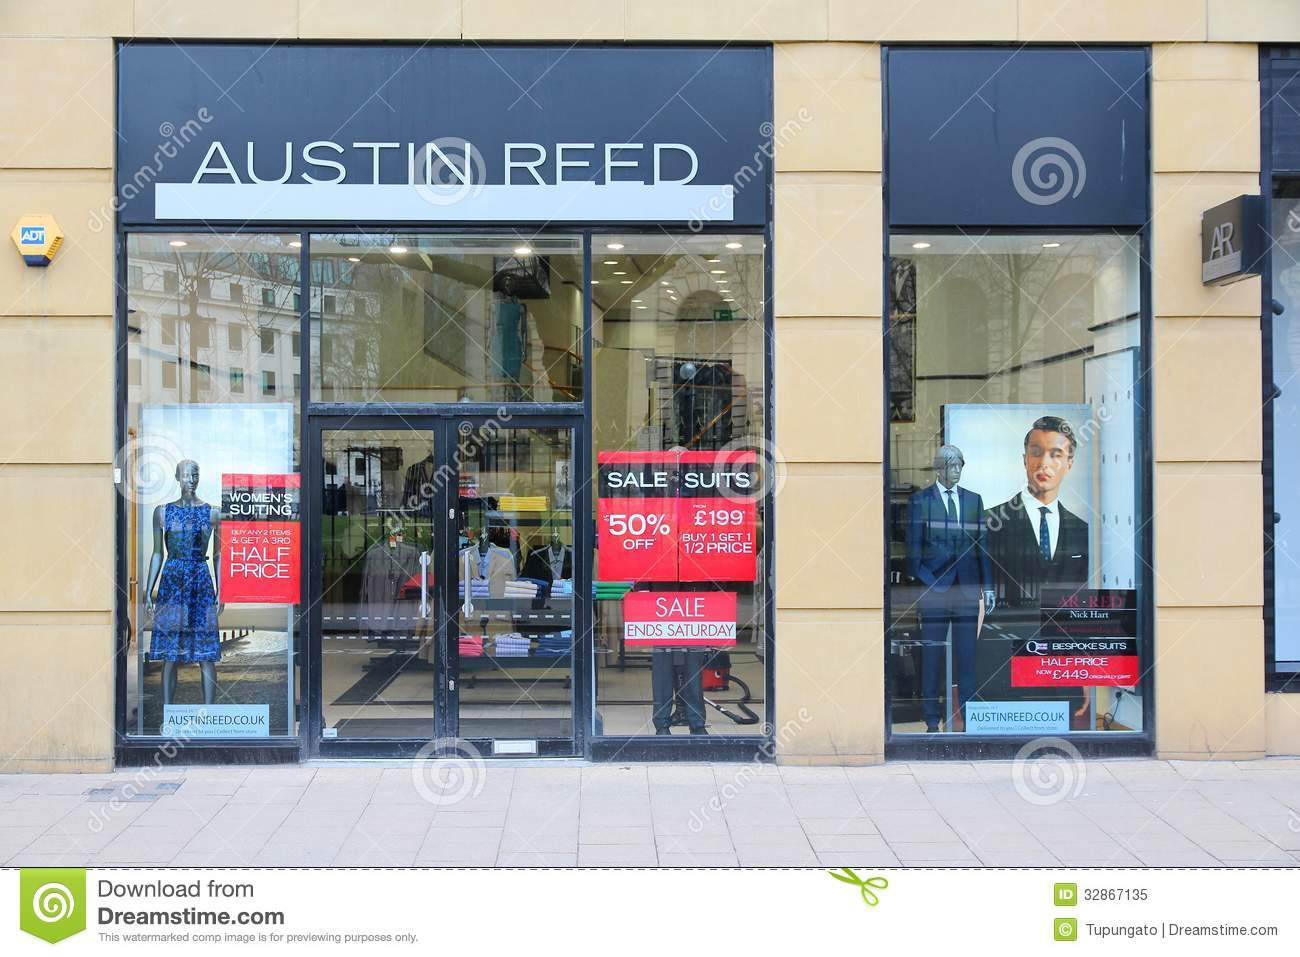 Reed Boutique Photos Free Royalty Free Stock Photos From Dreamstime